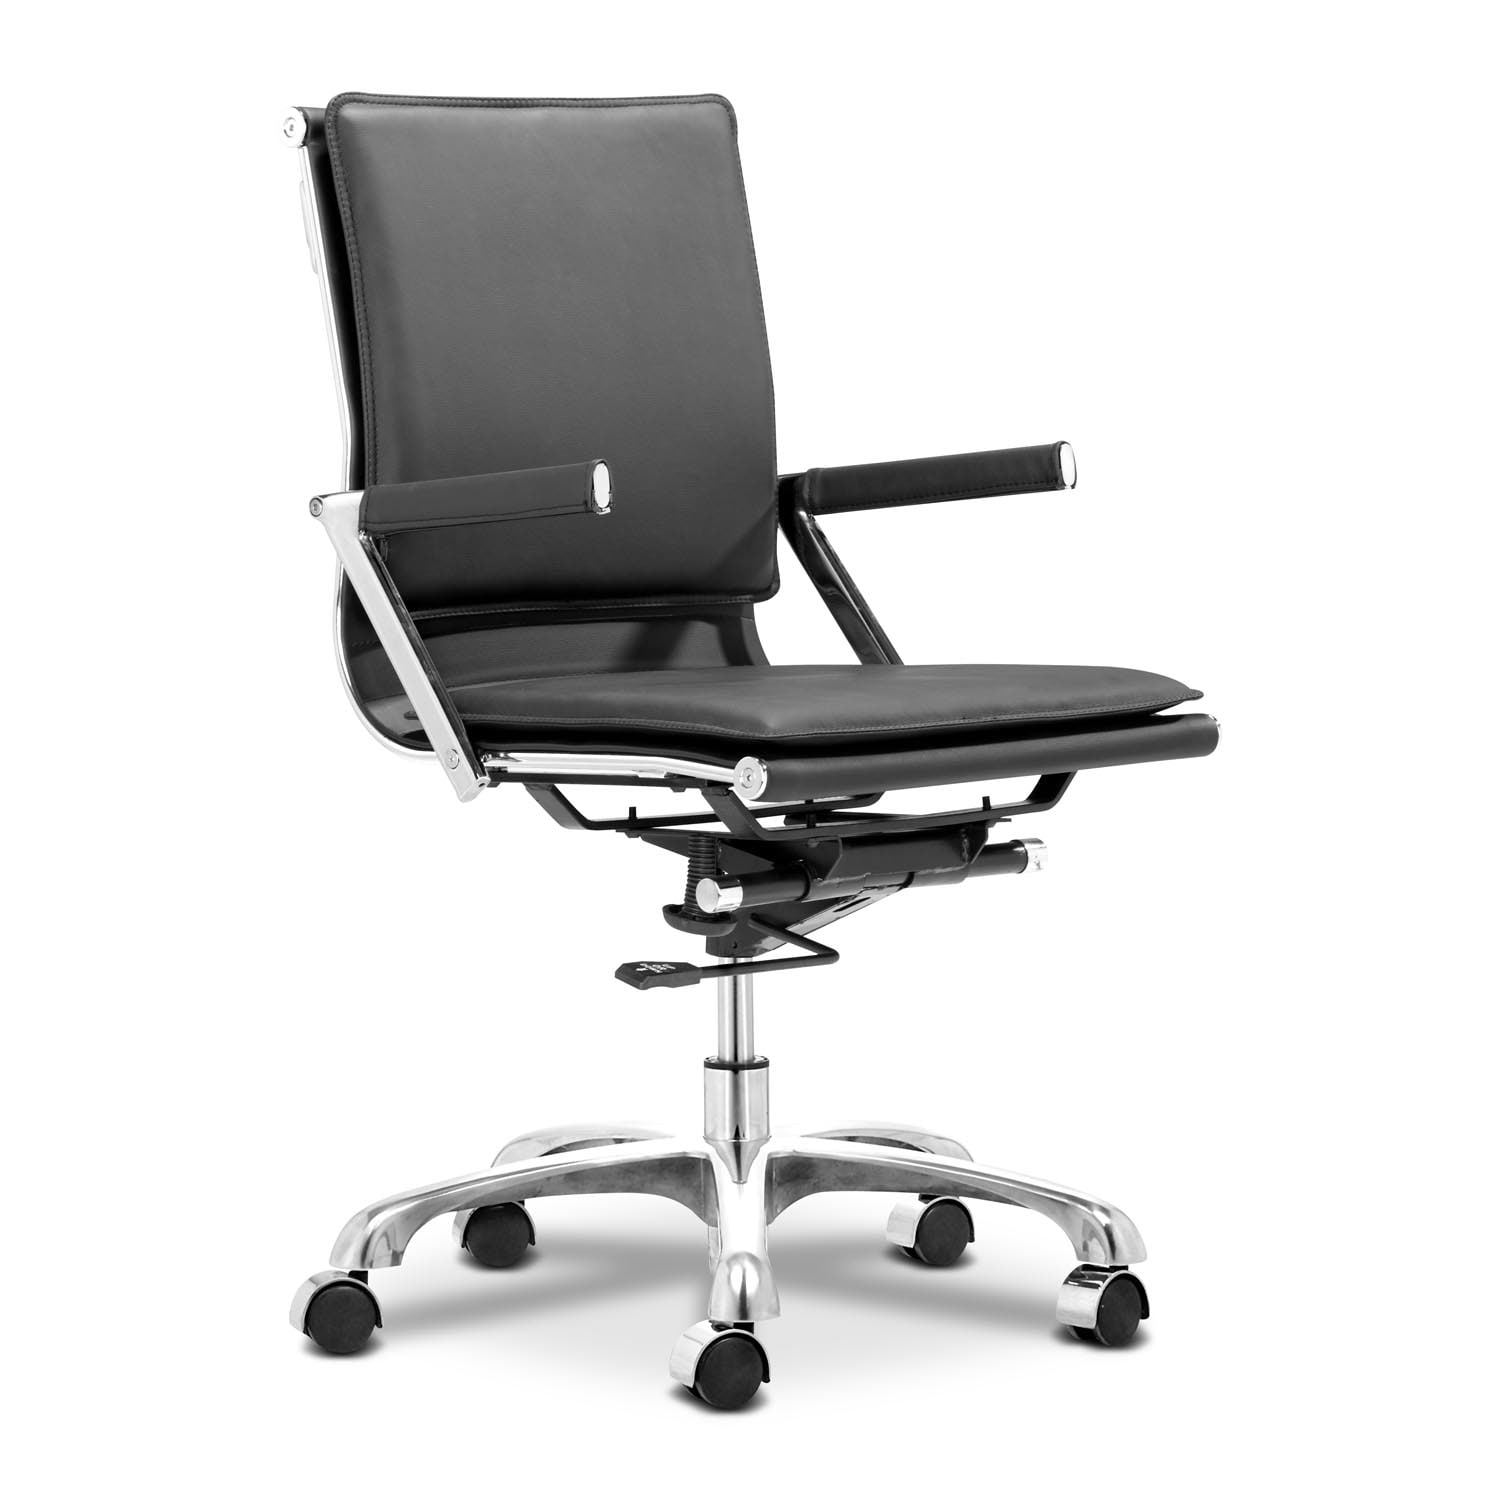 Nelson Office Arm Chair - Black